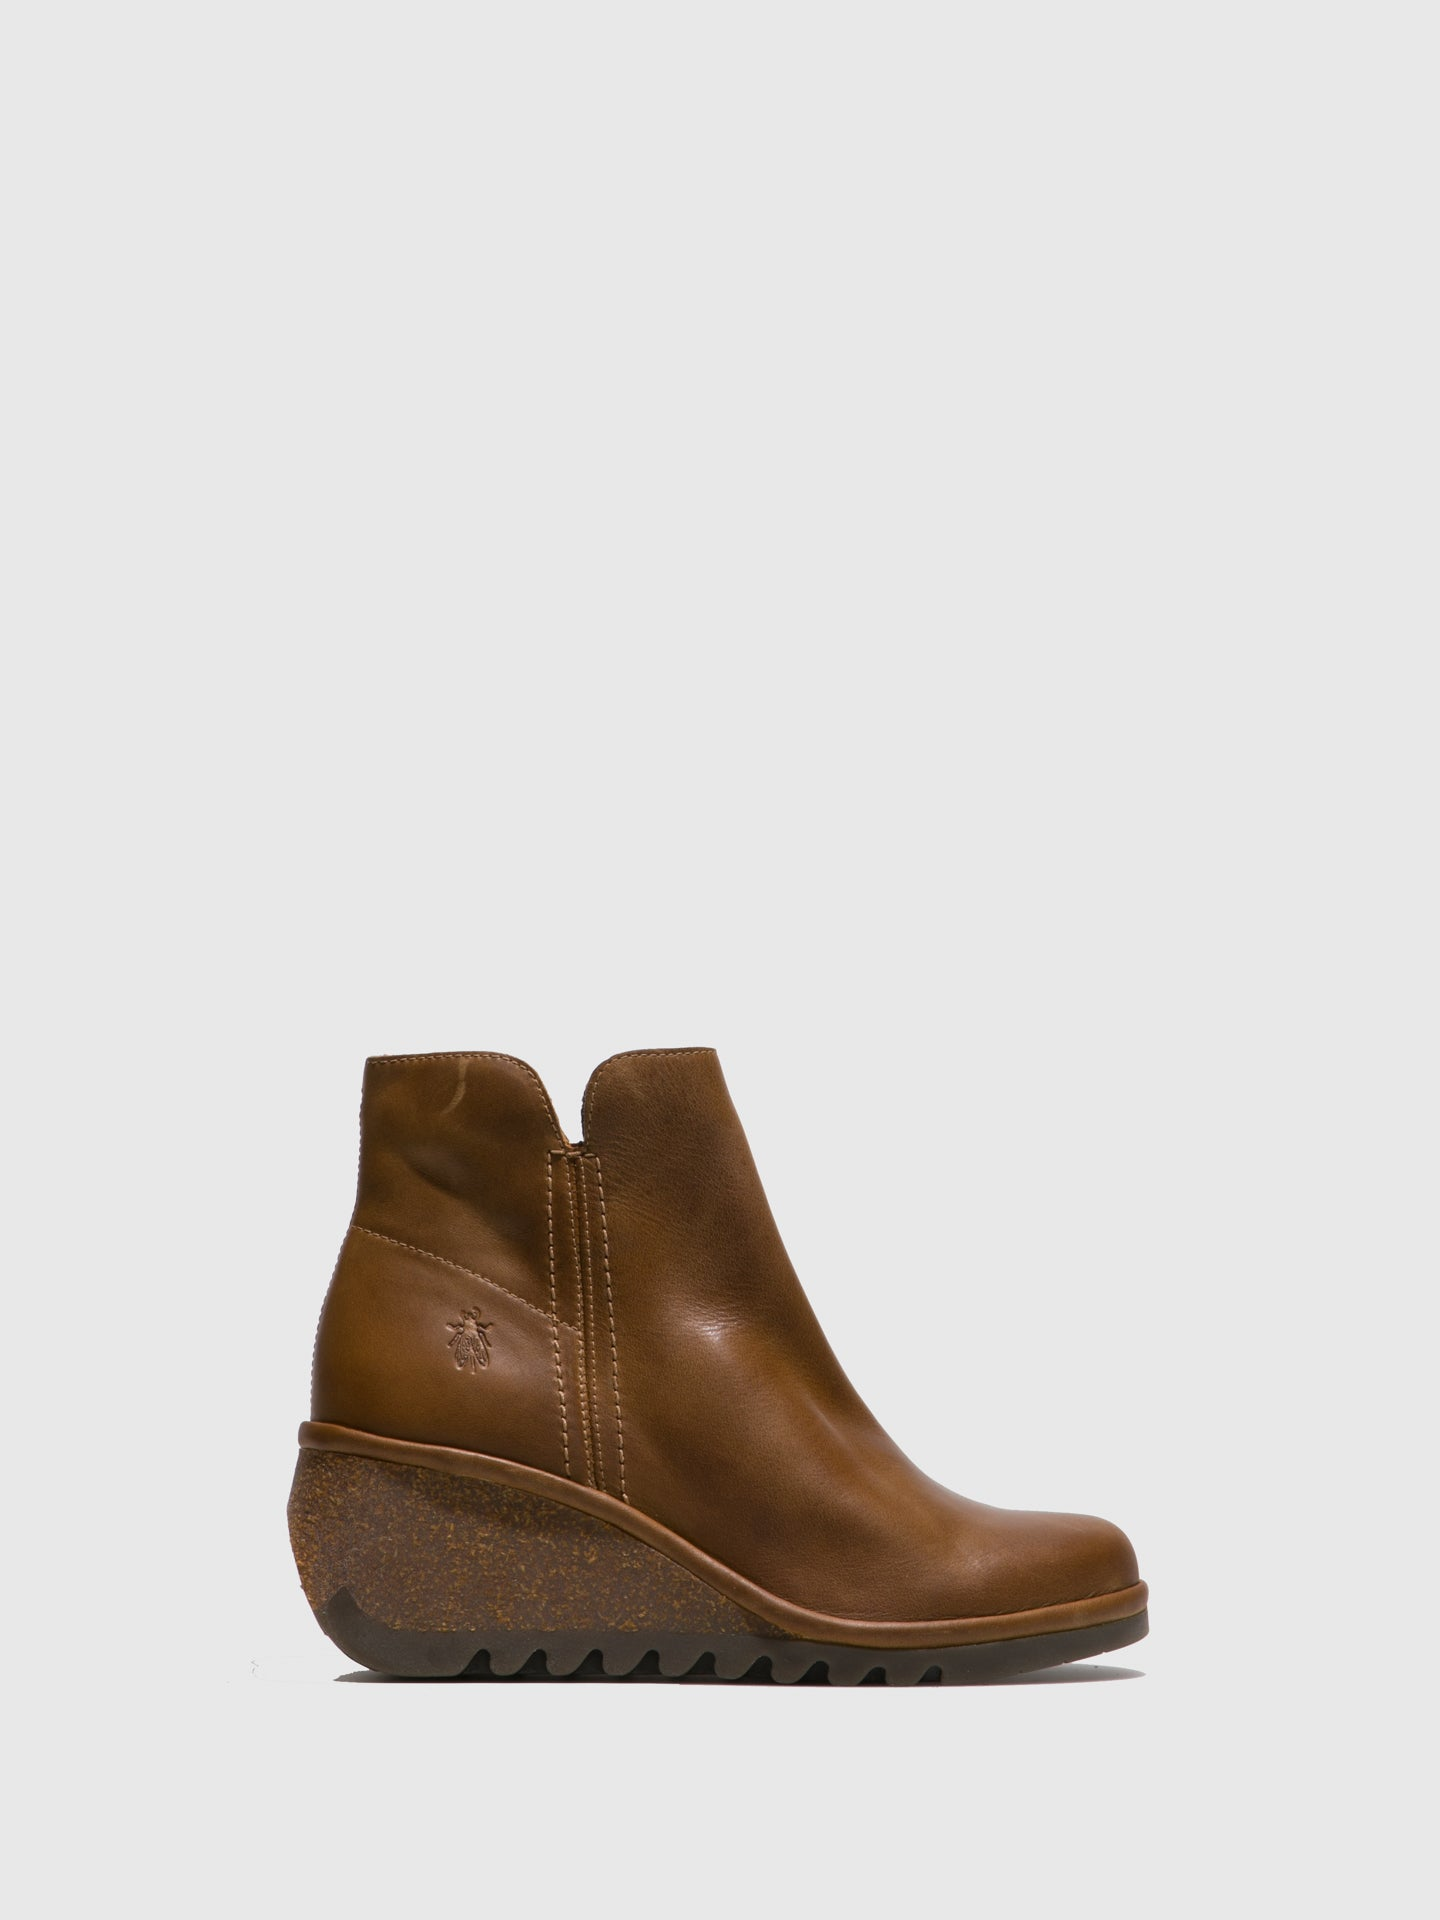 Fly London Camel Wedge Ankle Boots